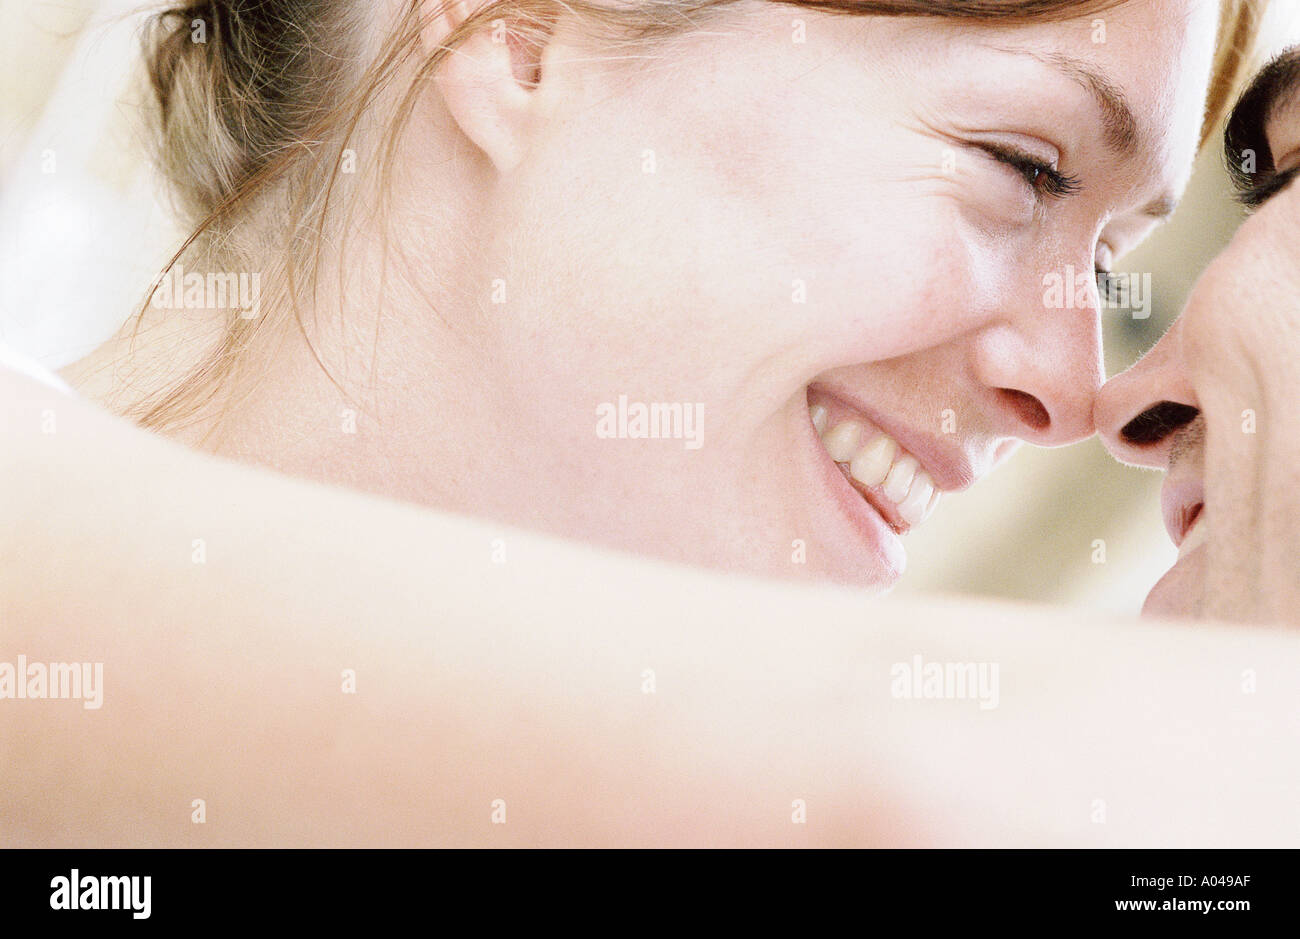 Close up detail of young couple   heads together  looking into each others eyes - Stock Image